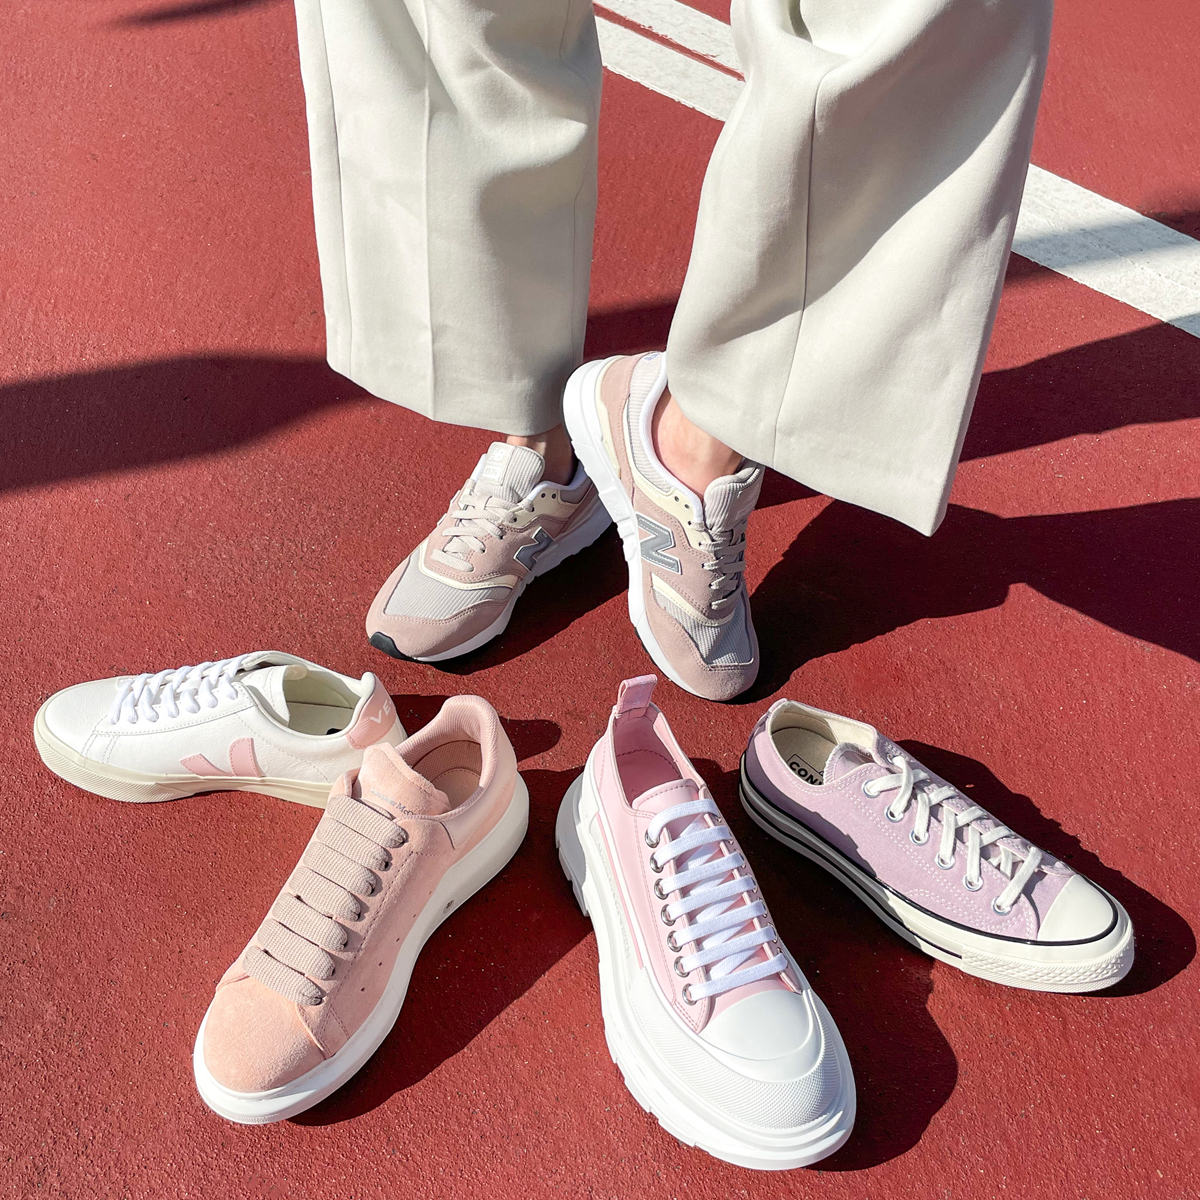 HBX Curation: Sneakers